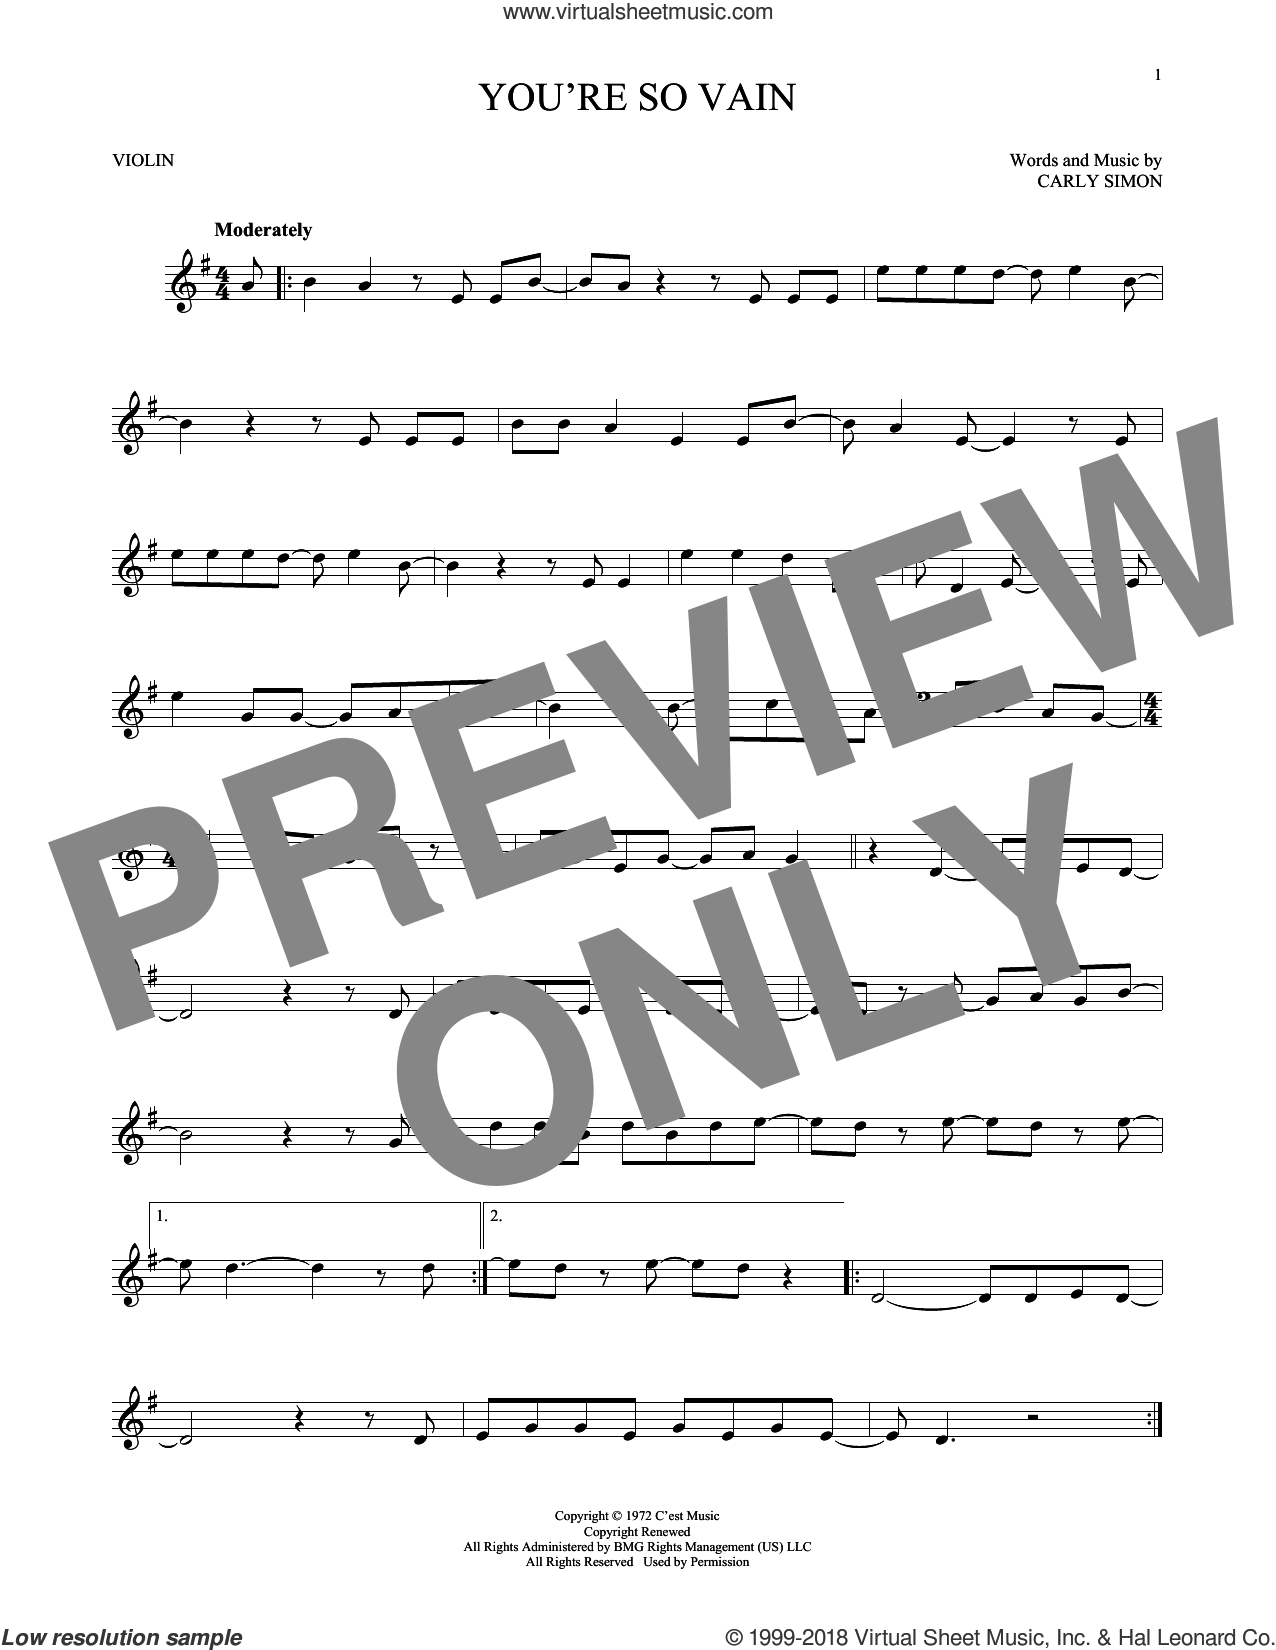 You're So Vain sheet music for violin solo by Carly Simon, intermediate skill level